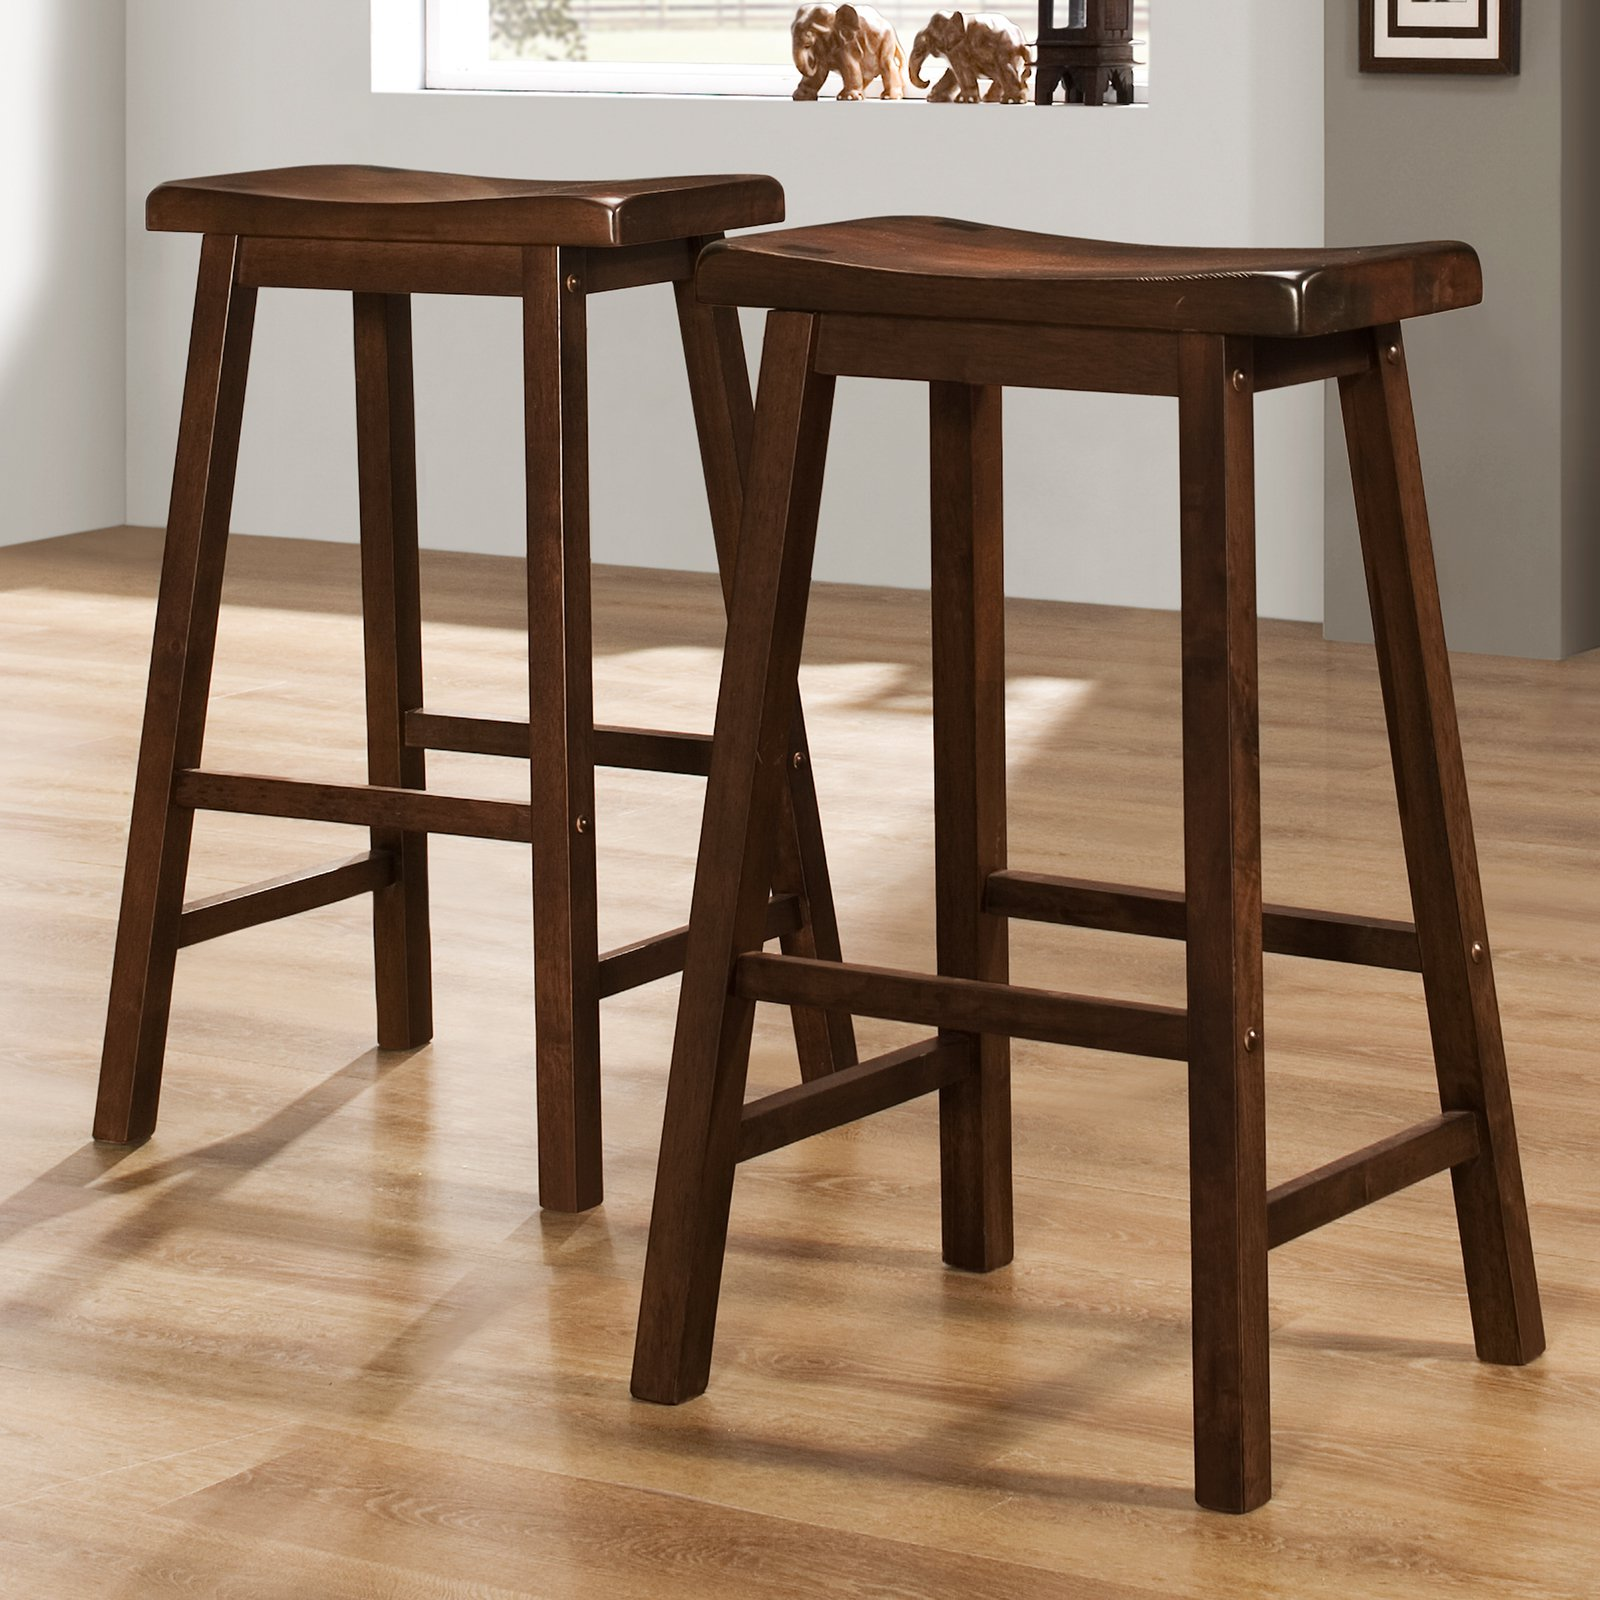 "Ashby Bar Stools 29"", Set of 2, Walnut"